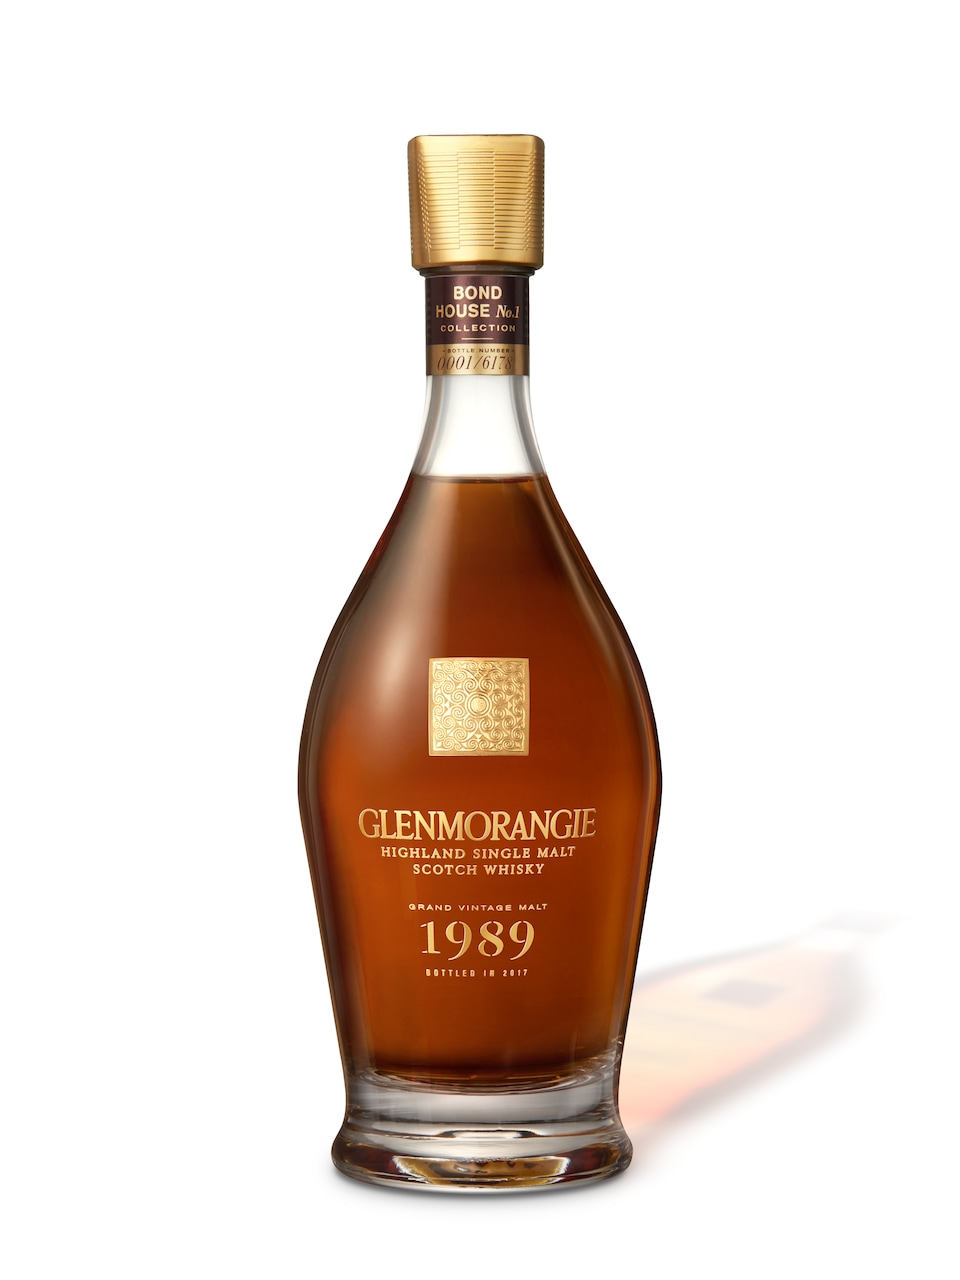 01_Bottle image_Grand vintage malt 1989